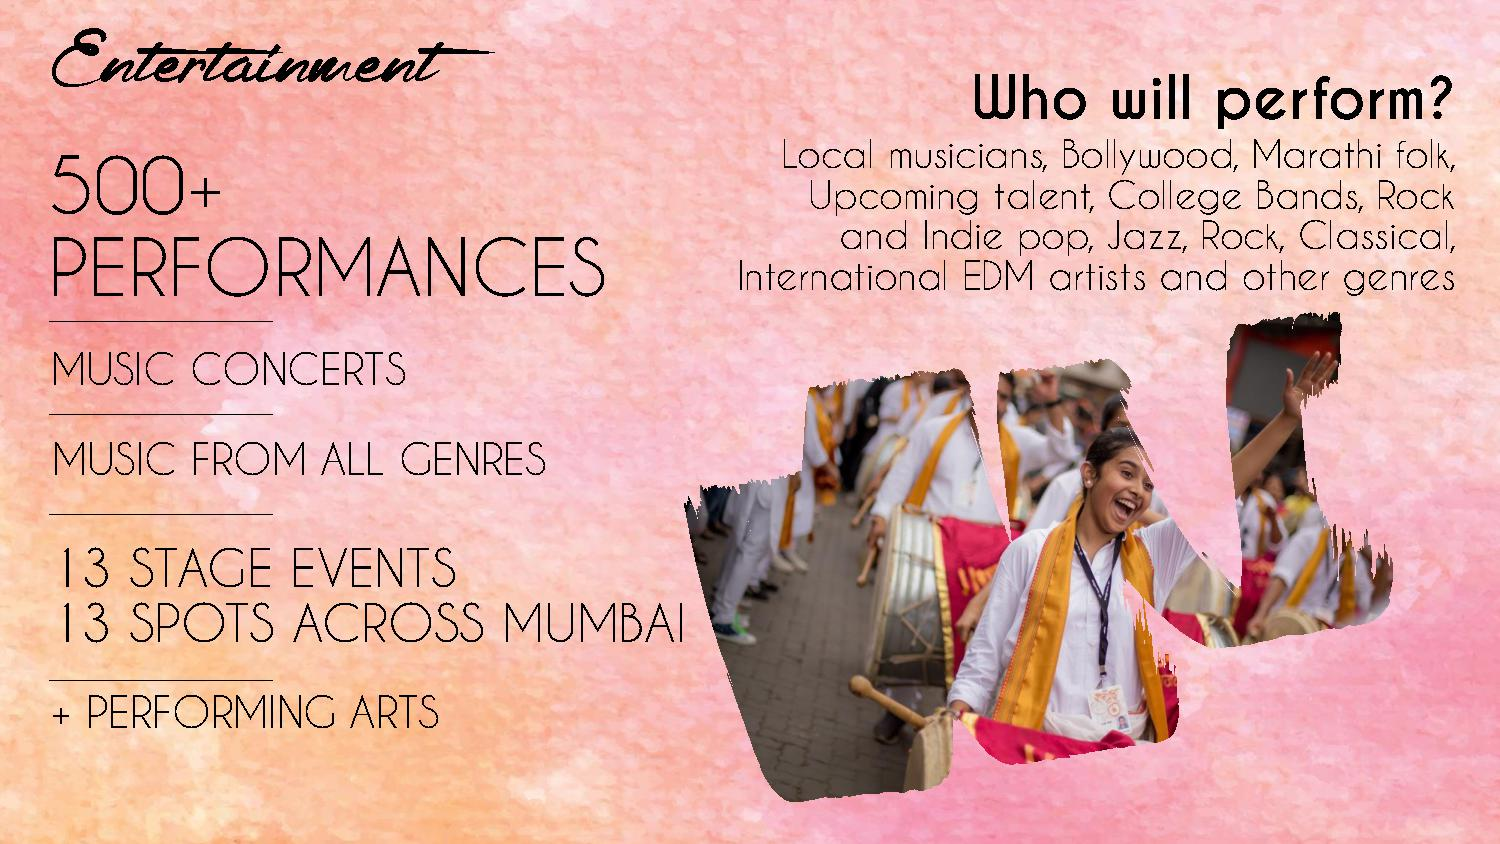 500+ PERFORMANCES MUSIC CONCERTS MUSIC FROM ALL GENRES 13 STAGE EVENTS 13 SPOTS ACROSS MUMBAI + PERFORMING ARTS Who will perform? Local musicians, Bollywood, Marathi folk, Upcoming talent, College Bands, Rock and Indie pop, Jazz, Rock, Classical, International EDM artists and other genres